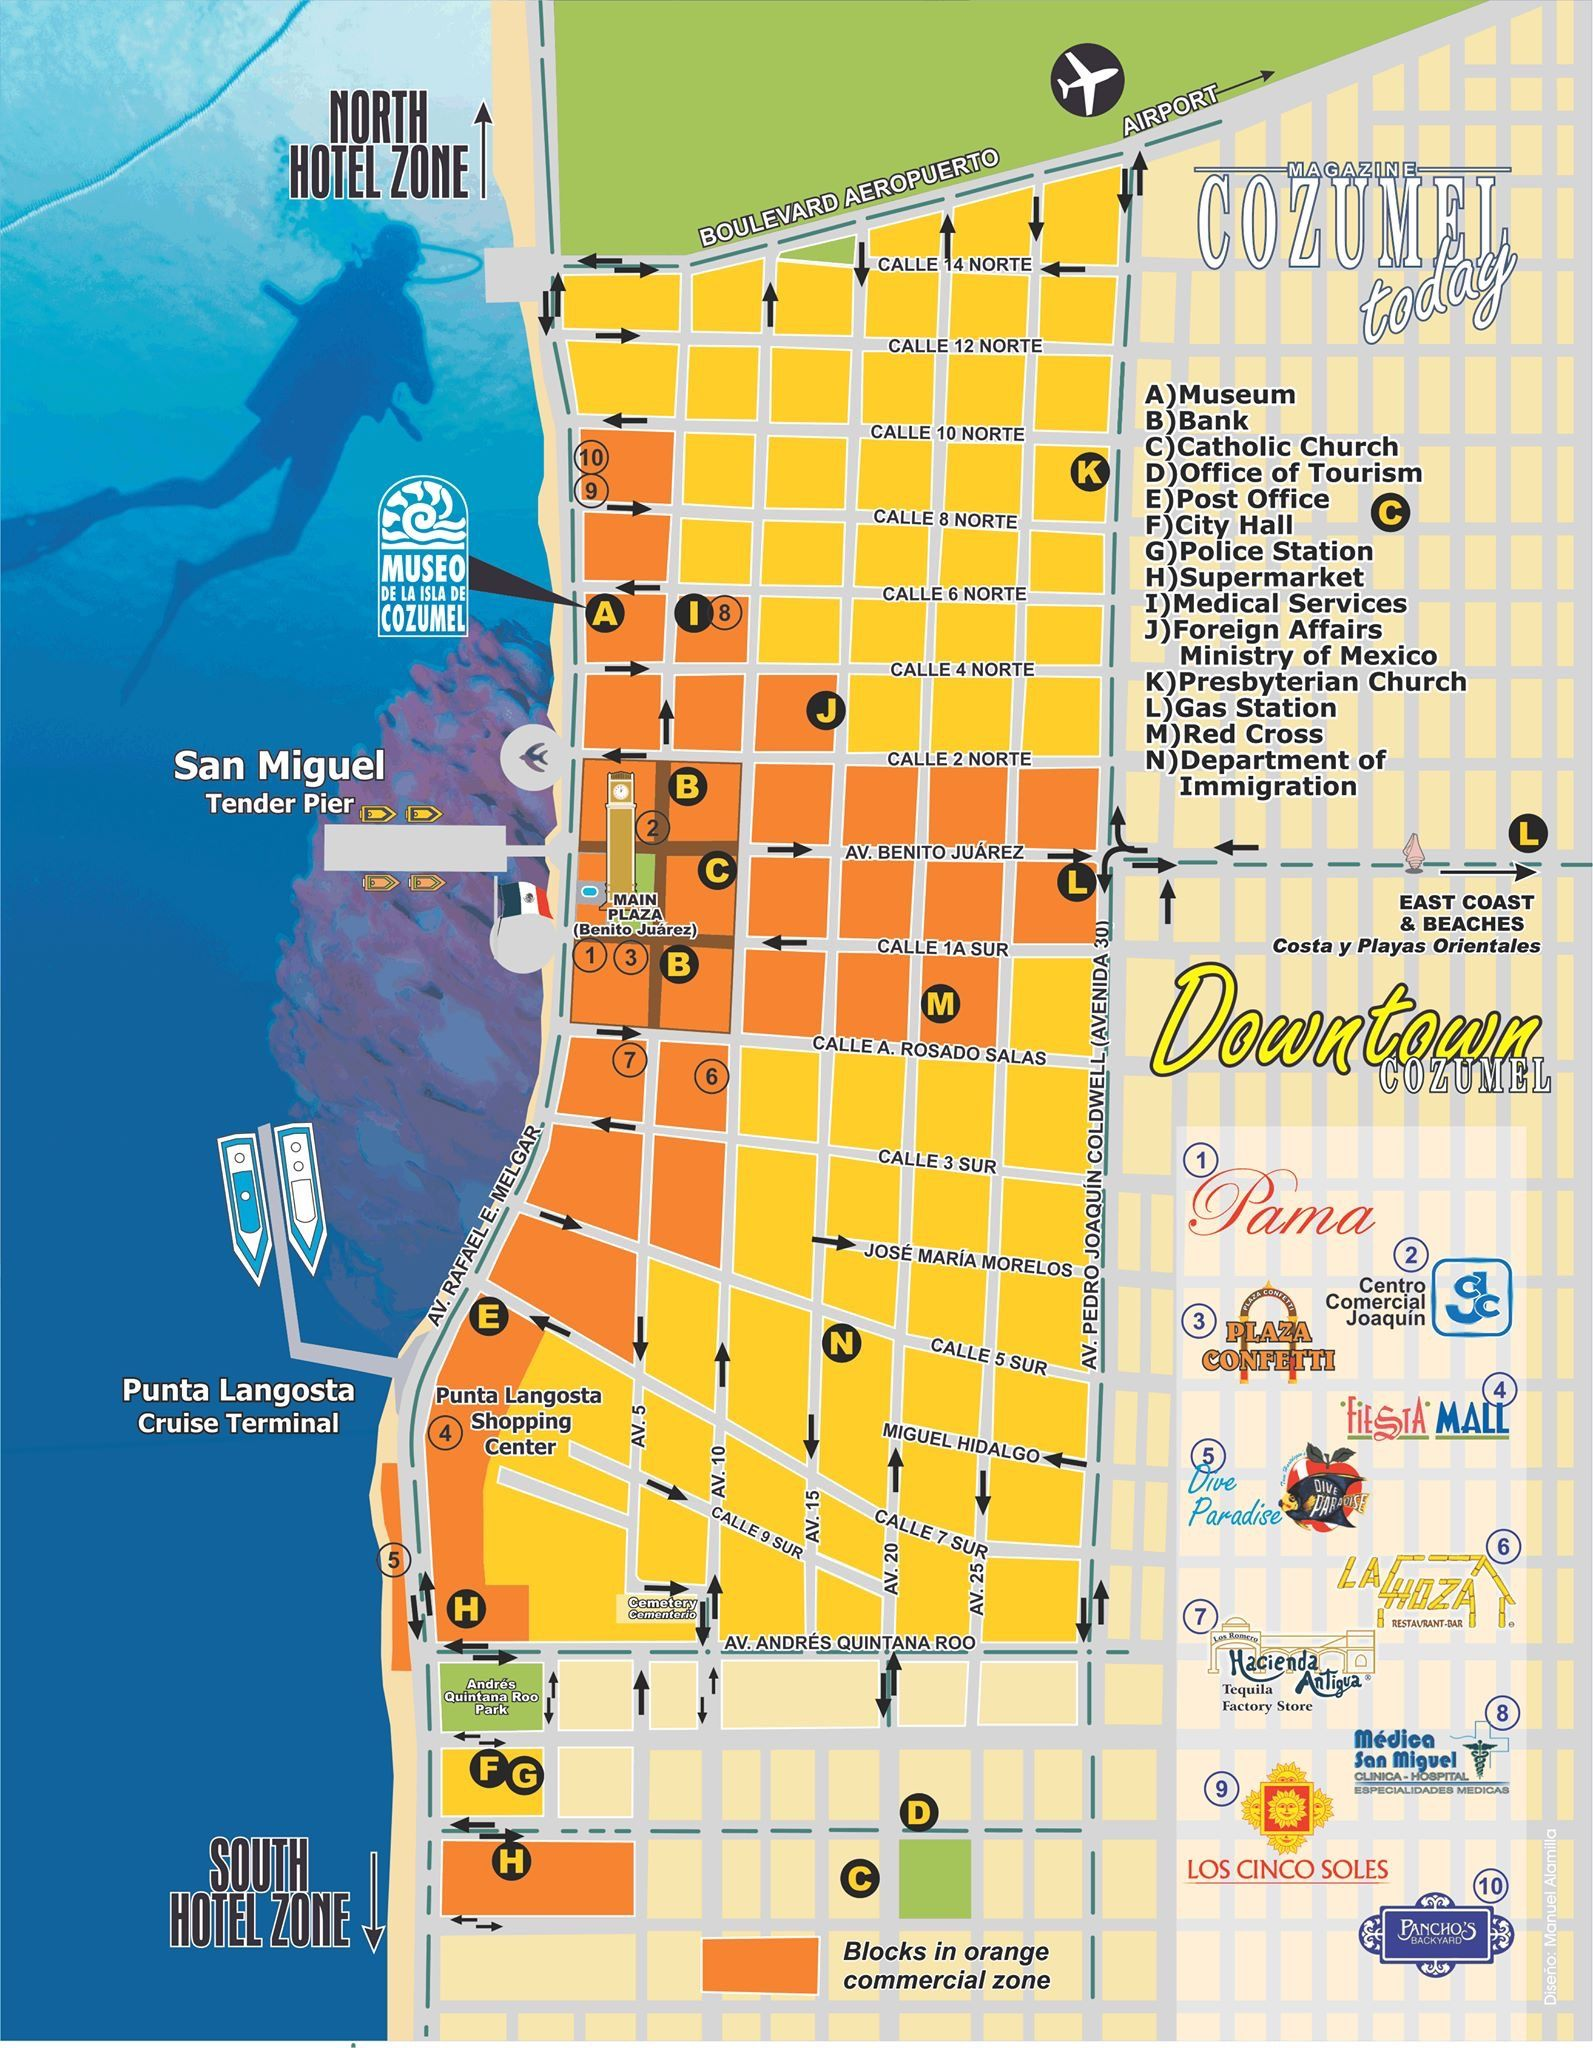 map of key west cruise ports, map of miami cruise lines, map of quintana roo mexico, map of mexico states, map of us cruise ports, map of brazil ports, carnival cruise ports, map of california and mexico, map of north america and mexico, map of cruise ship docks, map of galveston cruise terminal, map of mexico coastline, map of pyramids in mexico, cozumel street map with ports, mexico cargo ports, map of mexican ports, map of mexico resorts, ship at cozumel map of ports, map of carnival ports in mexico, map to cozumel, on map of cozumel mexico cruise ports